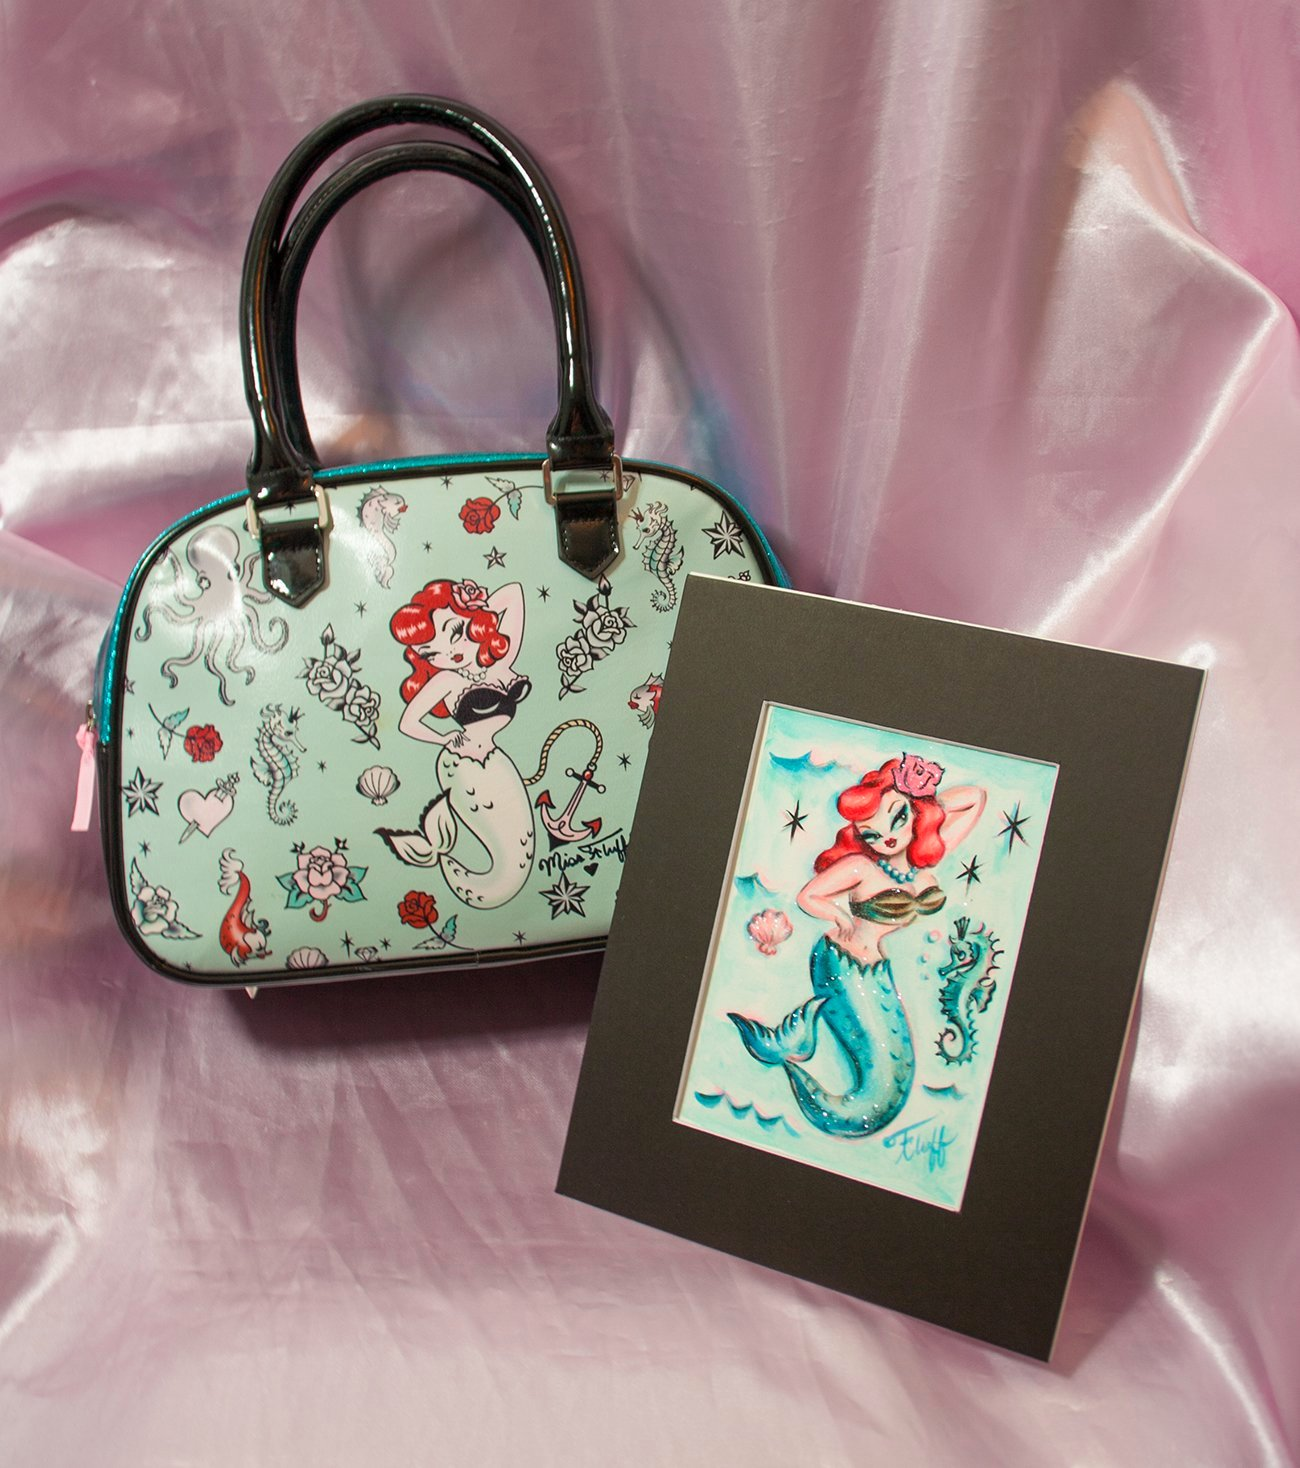 Pre-production One of a kind Sample Molly Mermaid Bag- SIGNED! and Original Drawing!